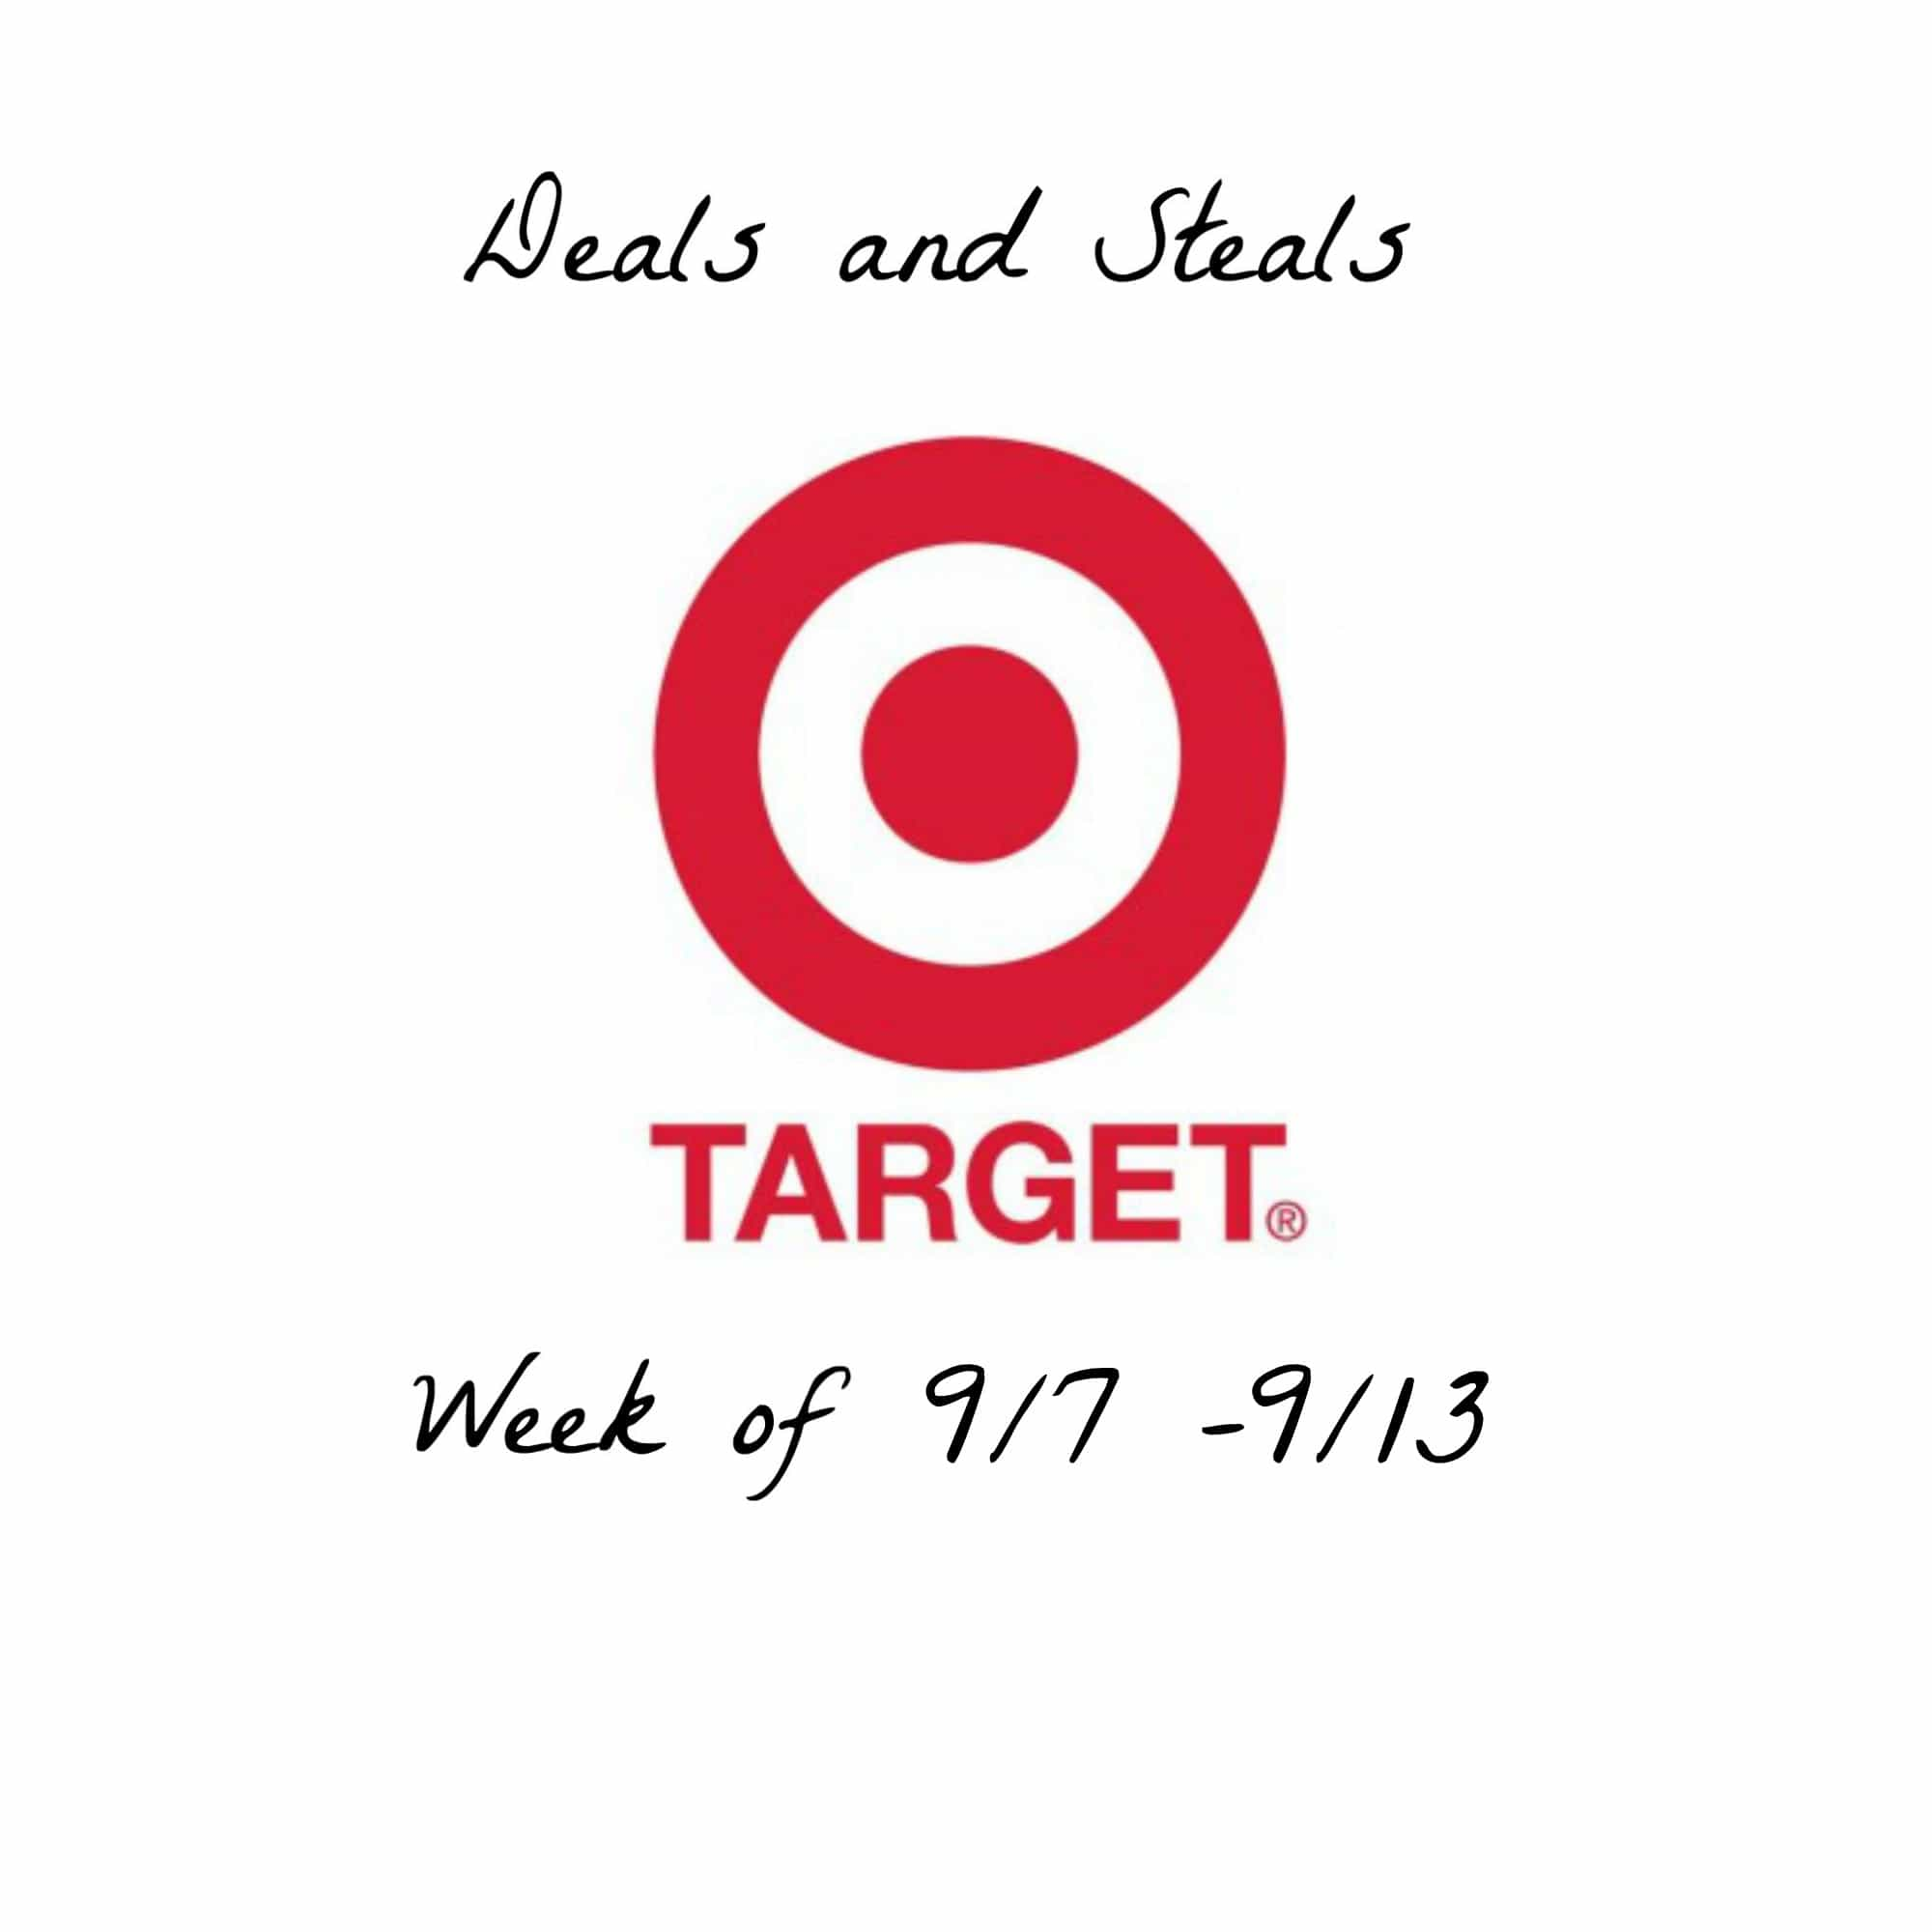 Target Deals and Steals week of 9/7 – 9/13